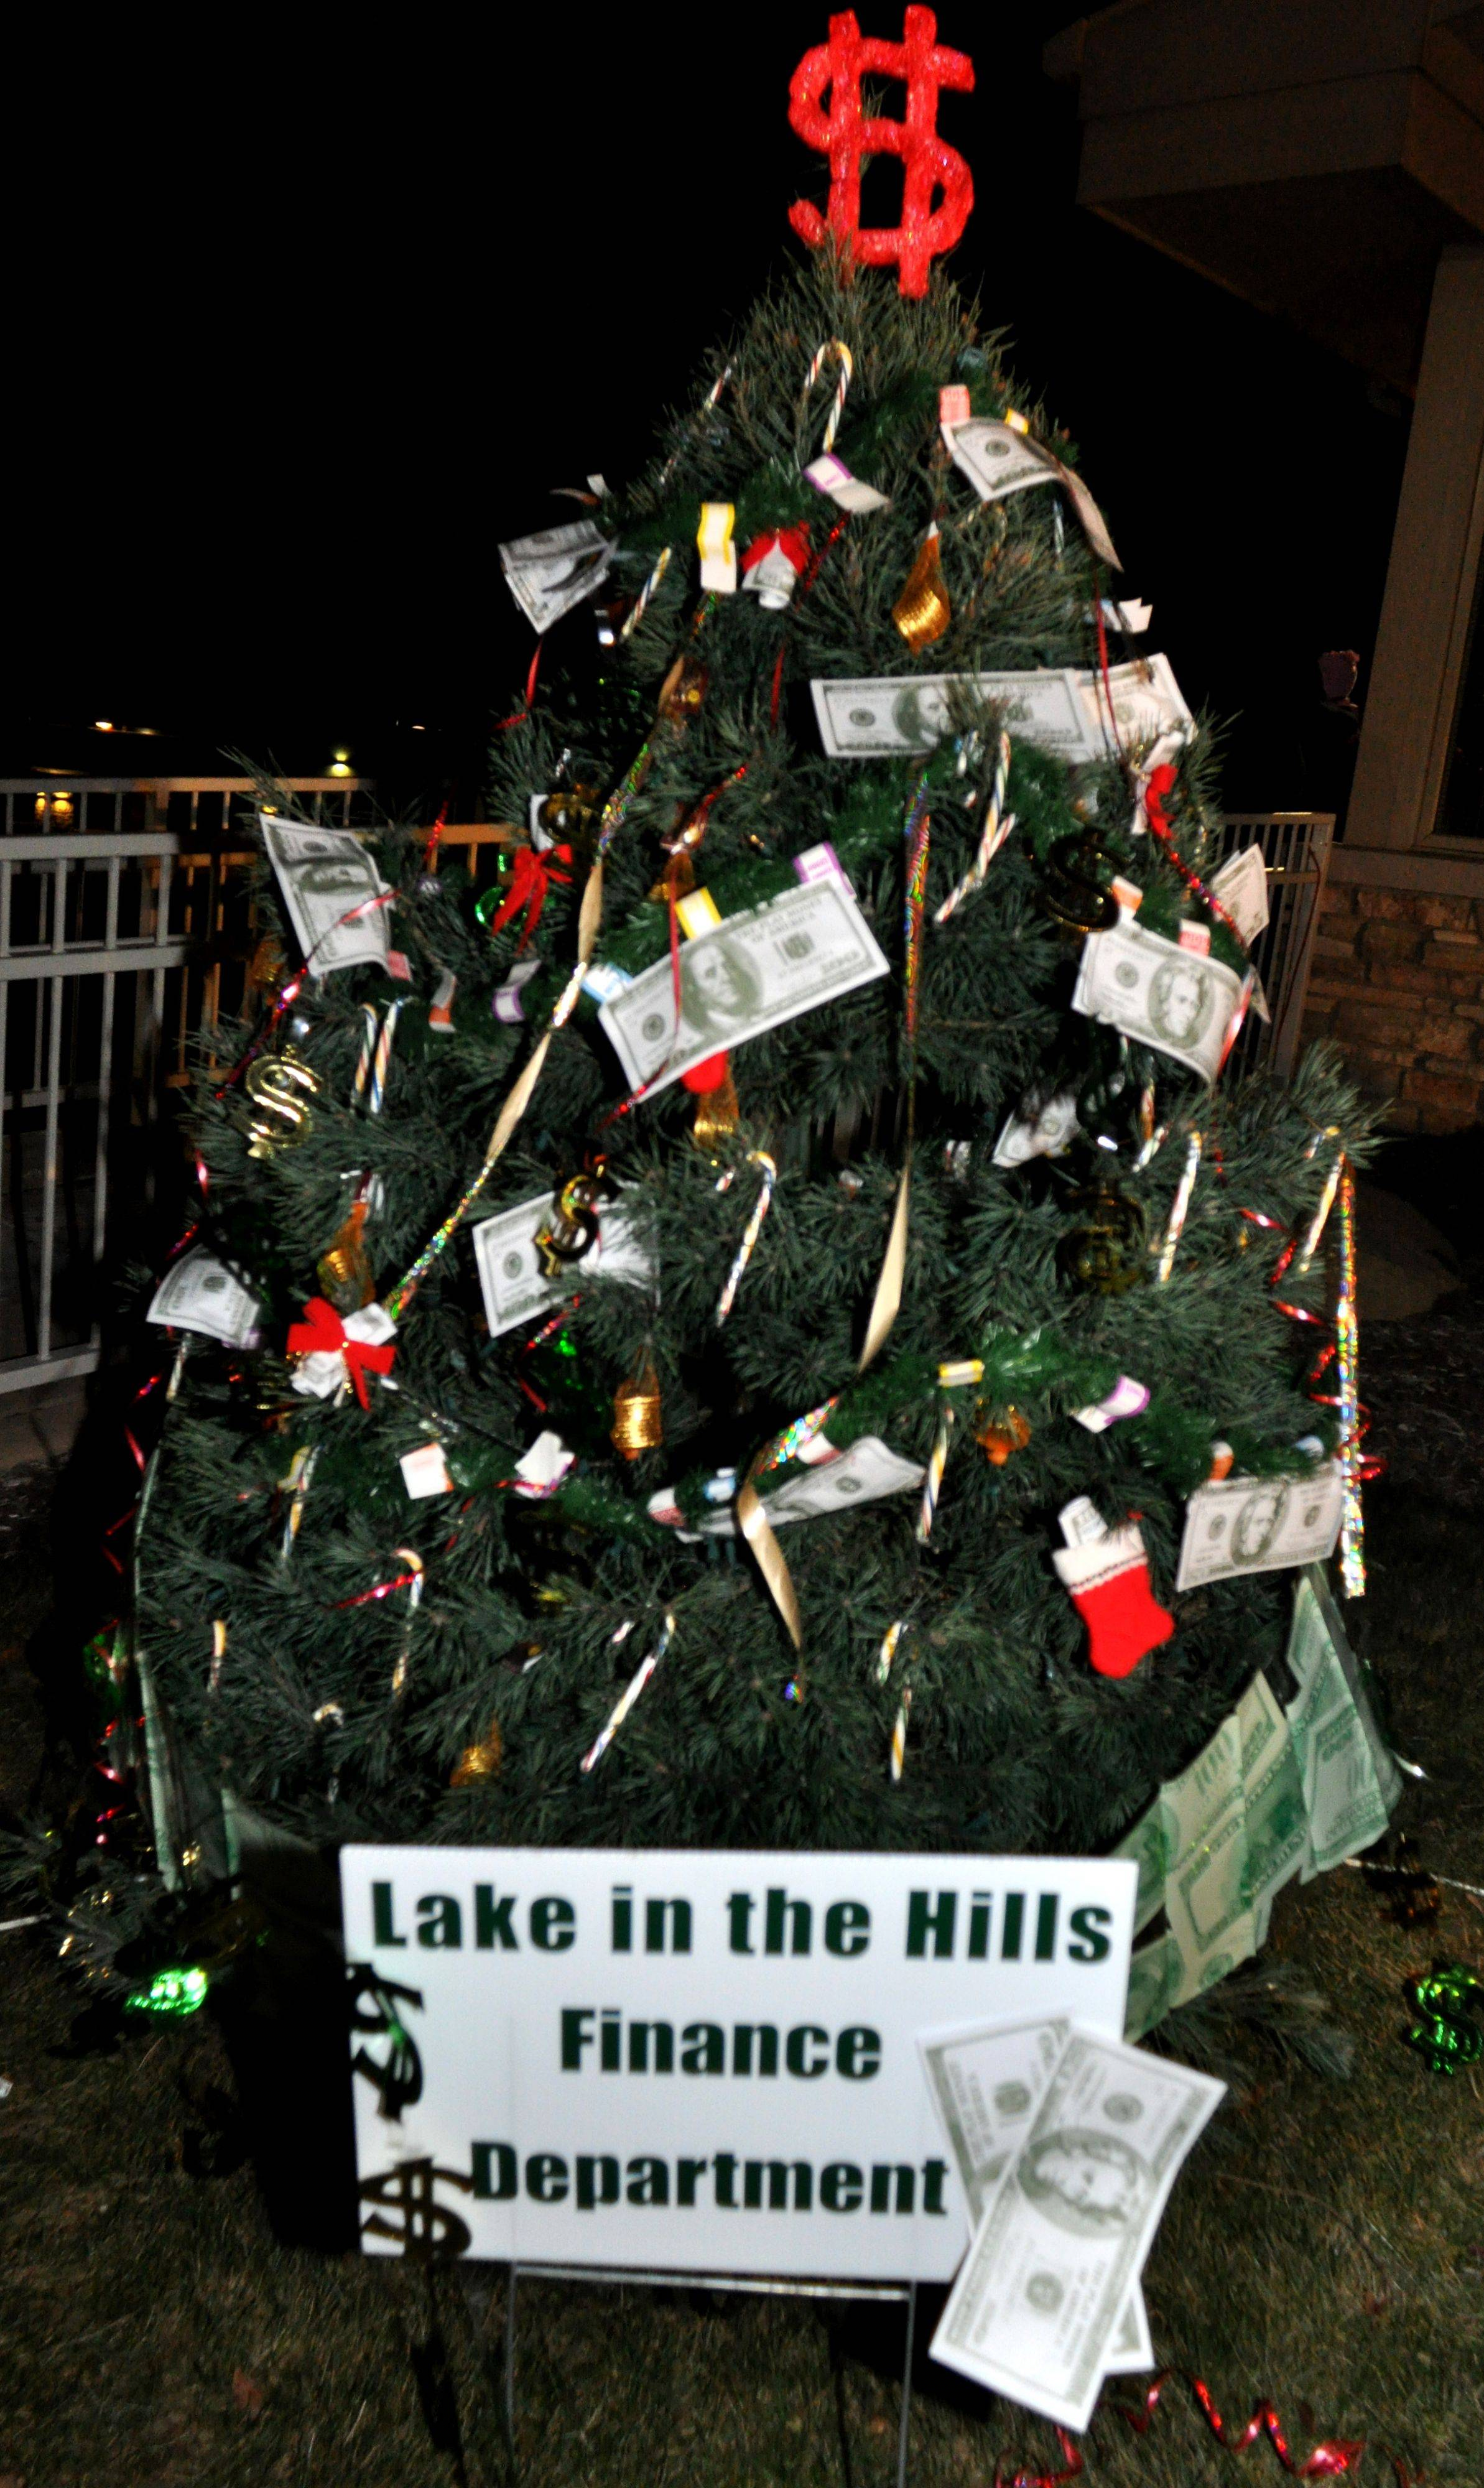 Several dozen trees were donated by local businesses and decorated by non-profit community groups in Lake in the Hills.